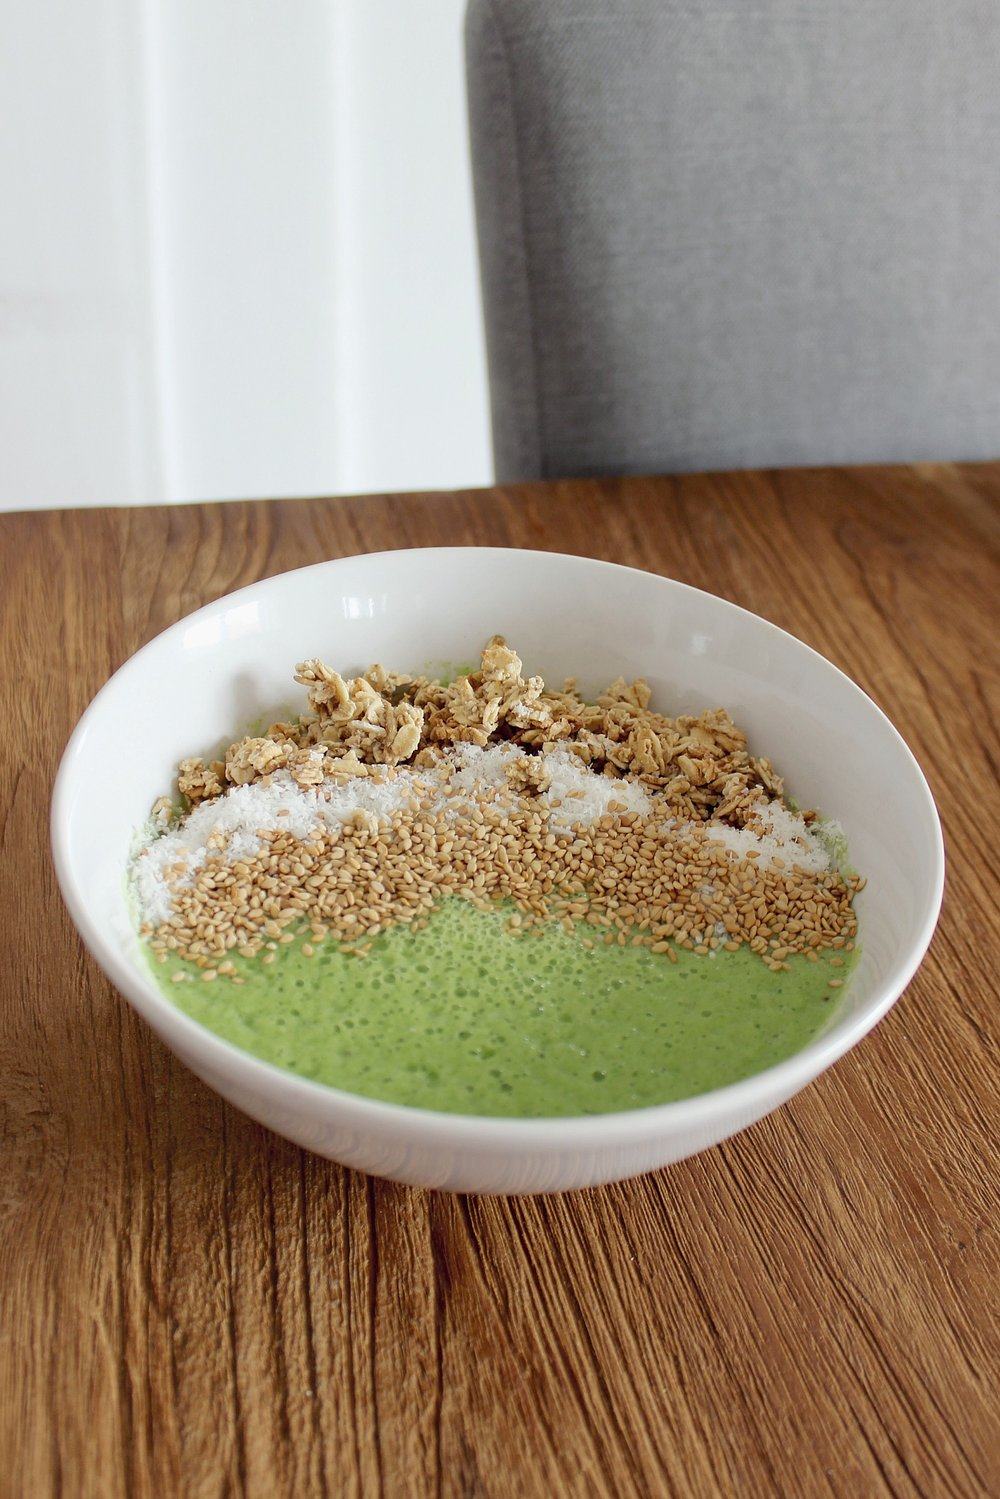 sweet & sourgreen smoothie bowl - 4 august 2017